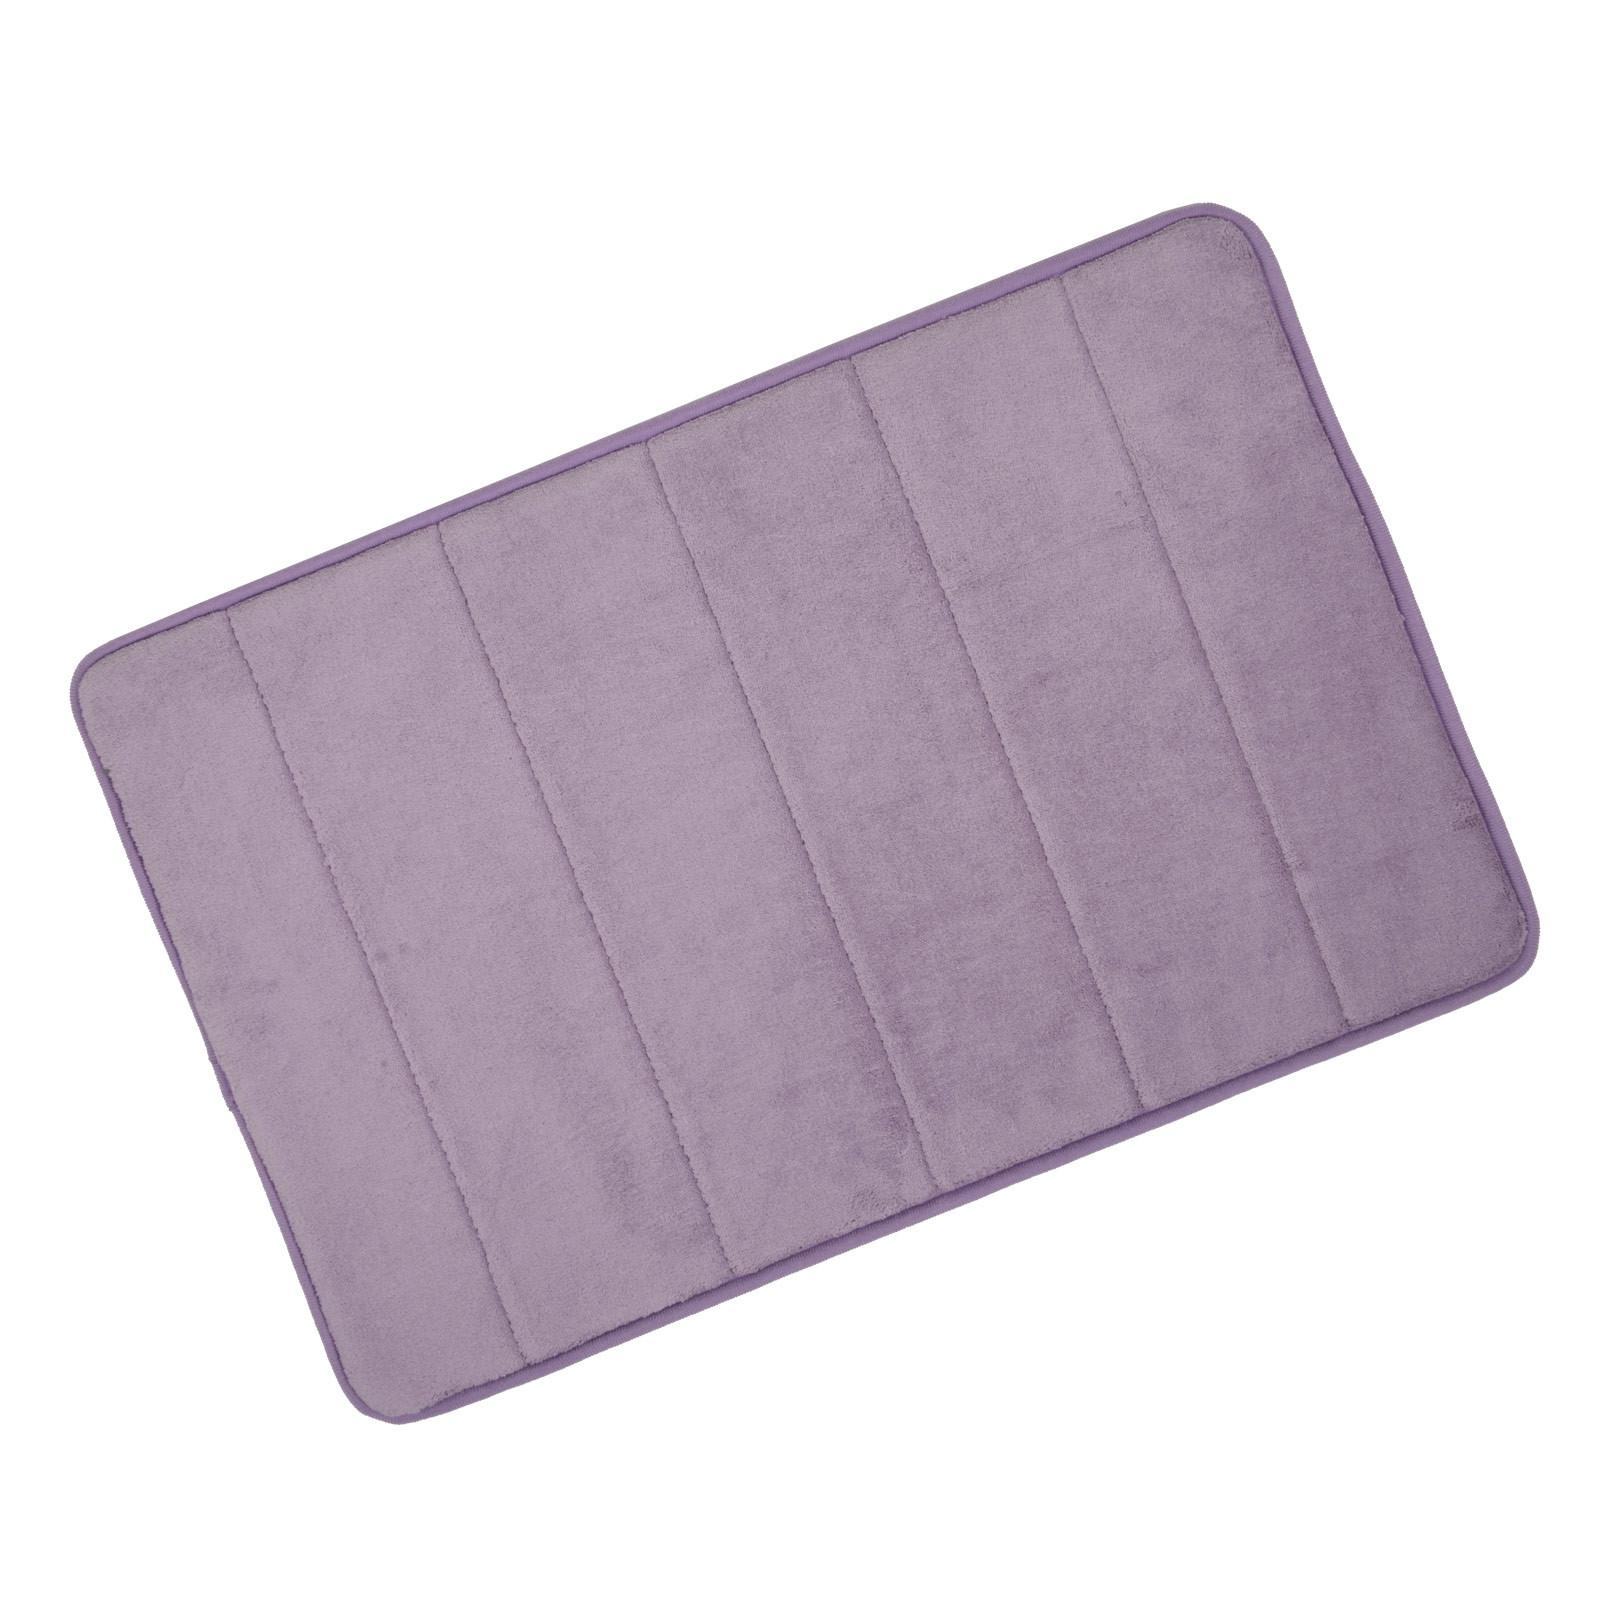 Wonderful Lavender Bath Rugs Stylish Design Direct Divide